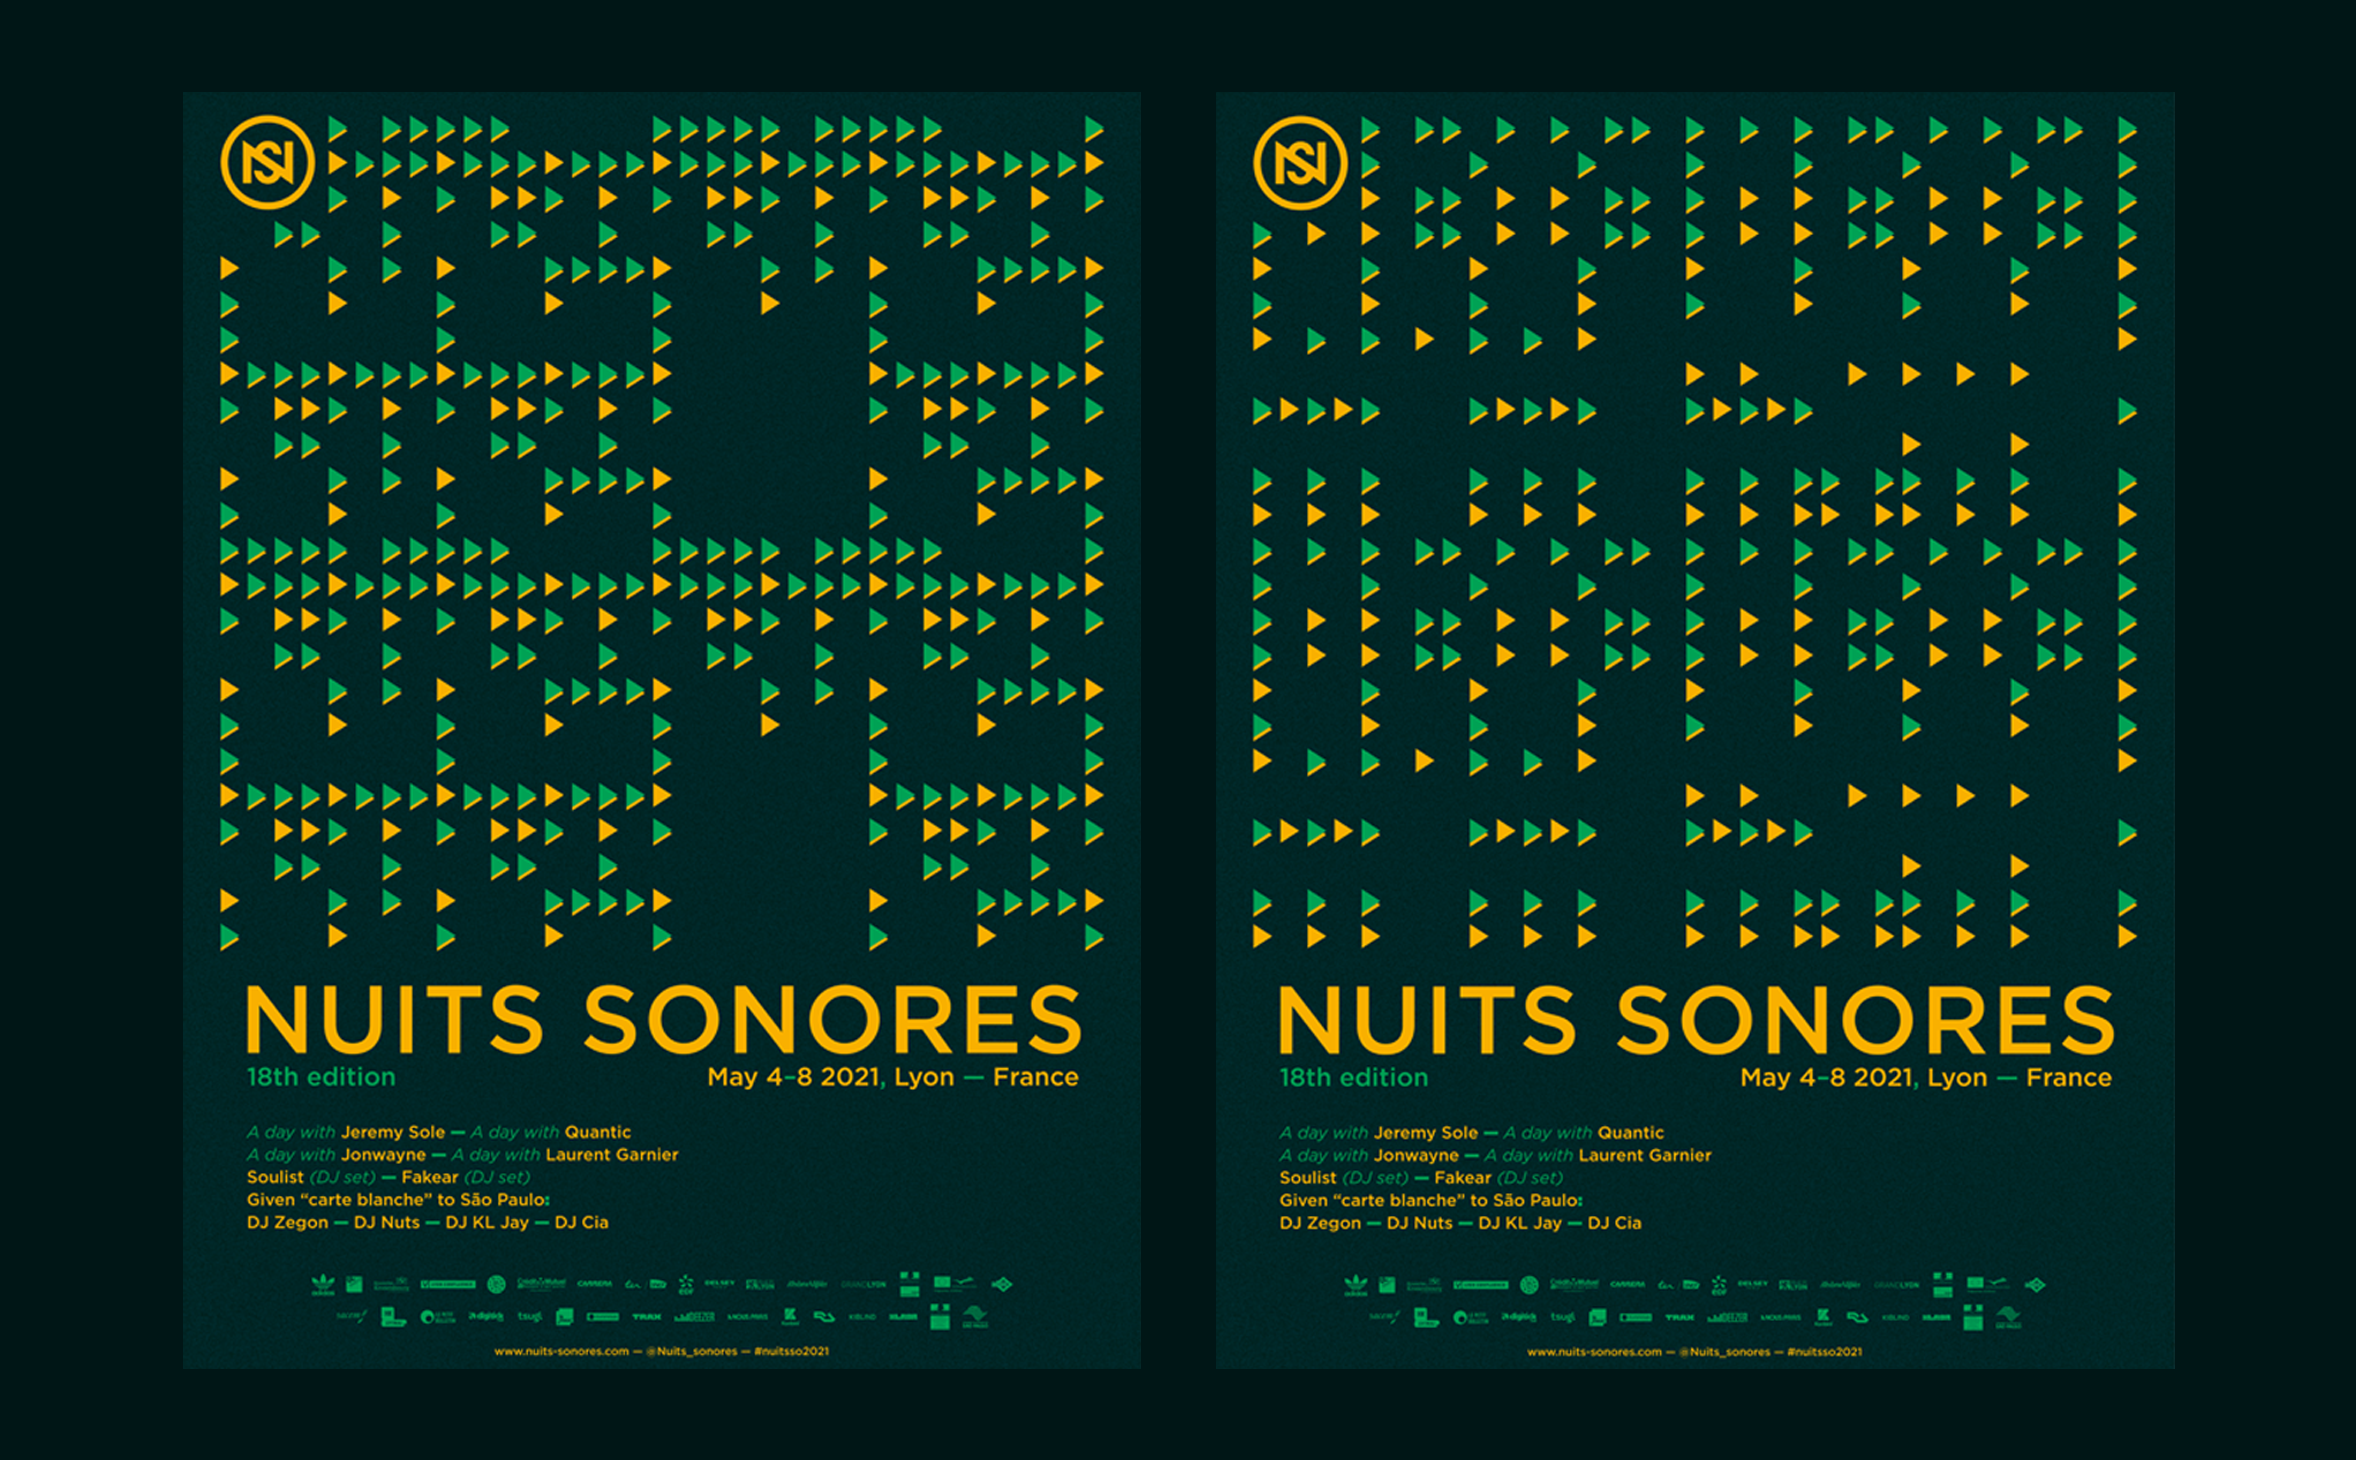 nuits sonores poster